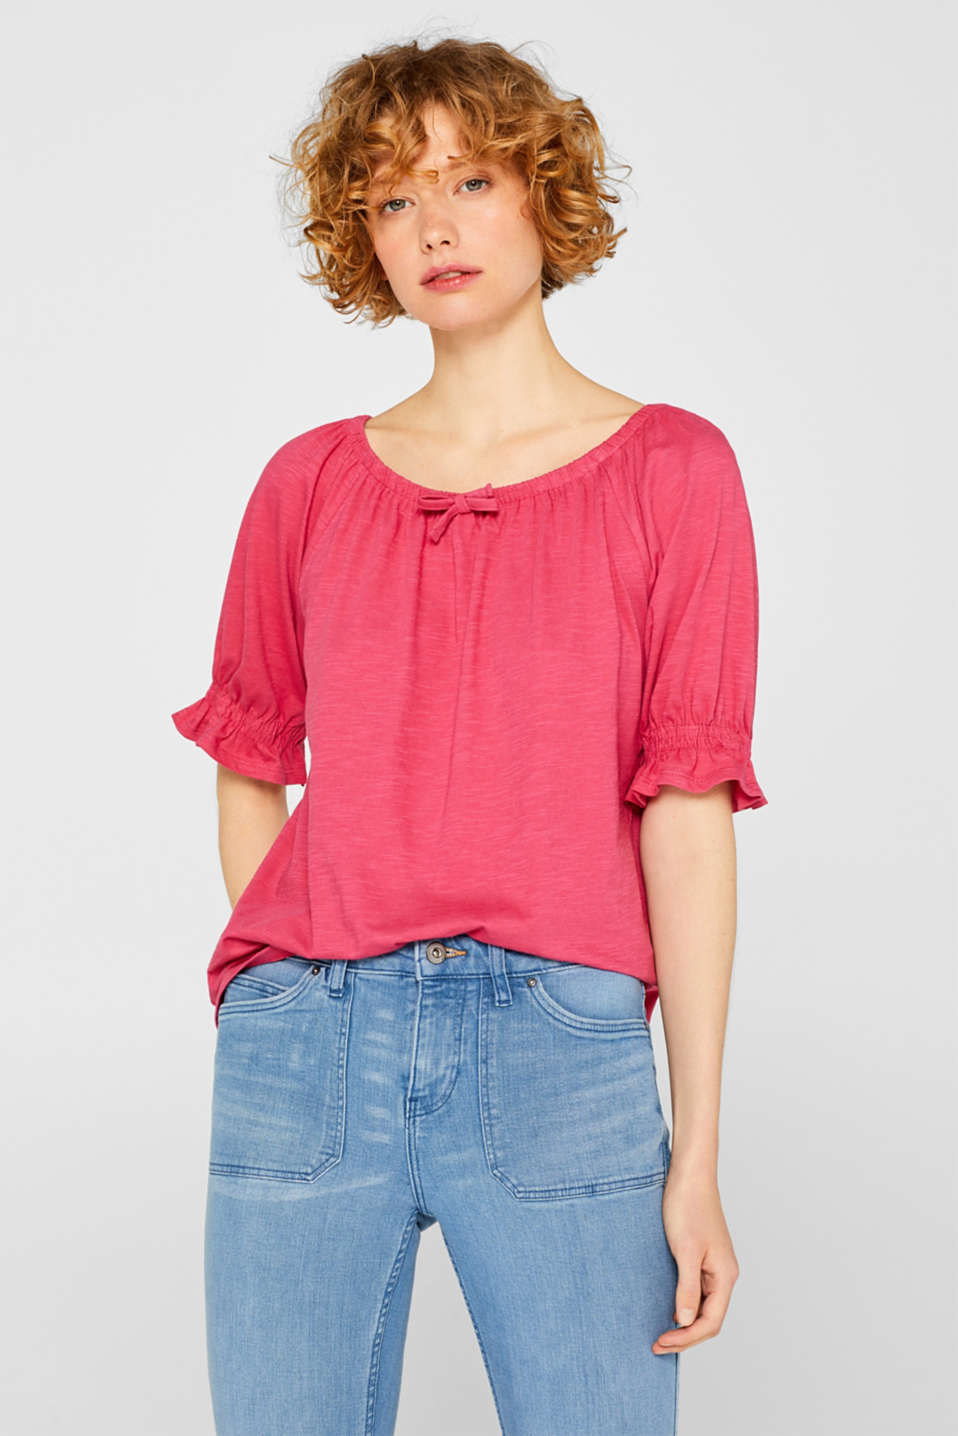 Esprit - Carmen top with organic cotton, 100% cotton